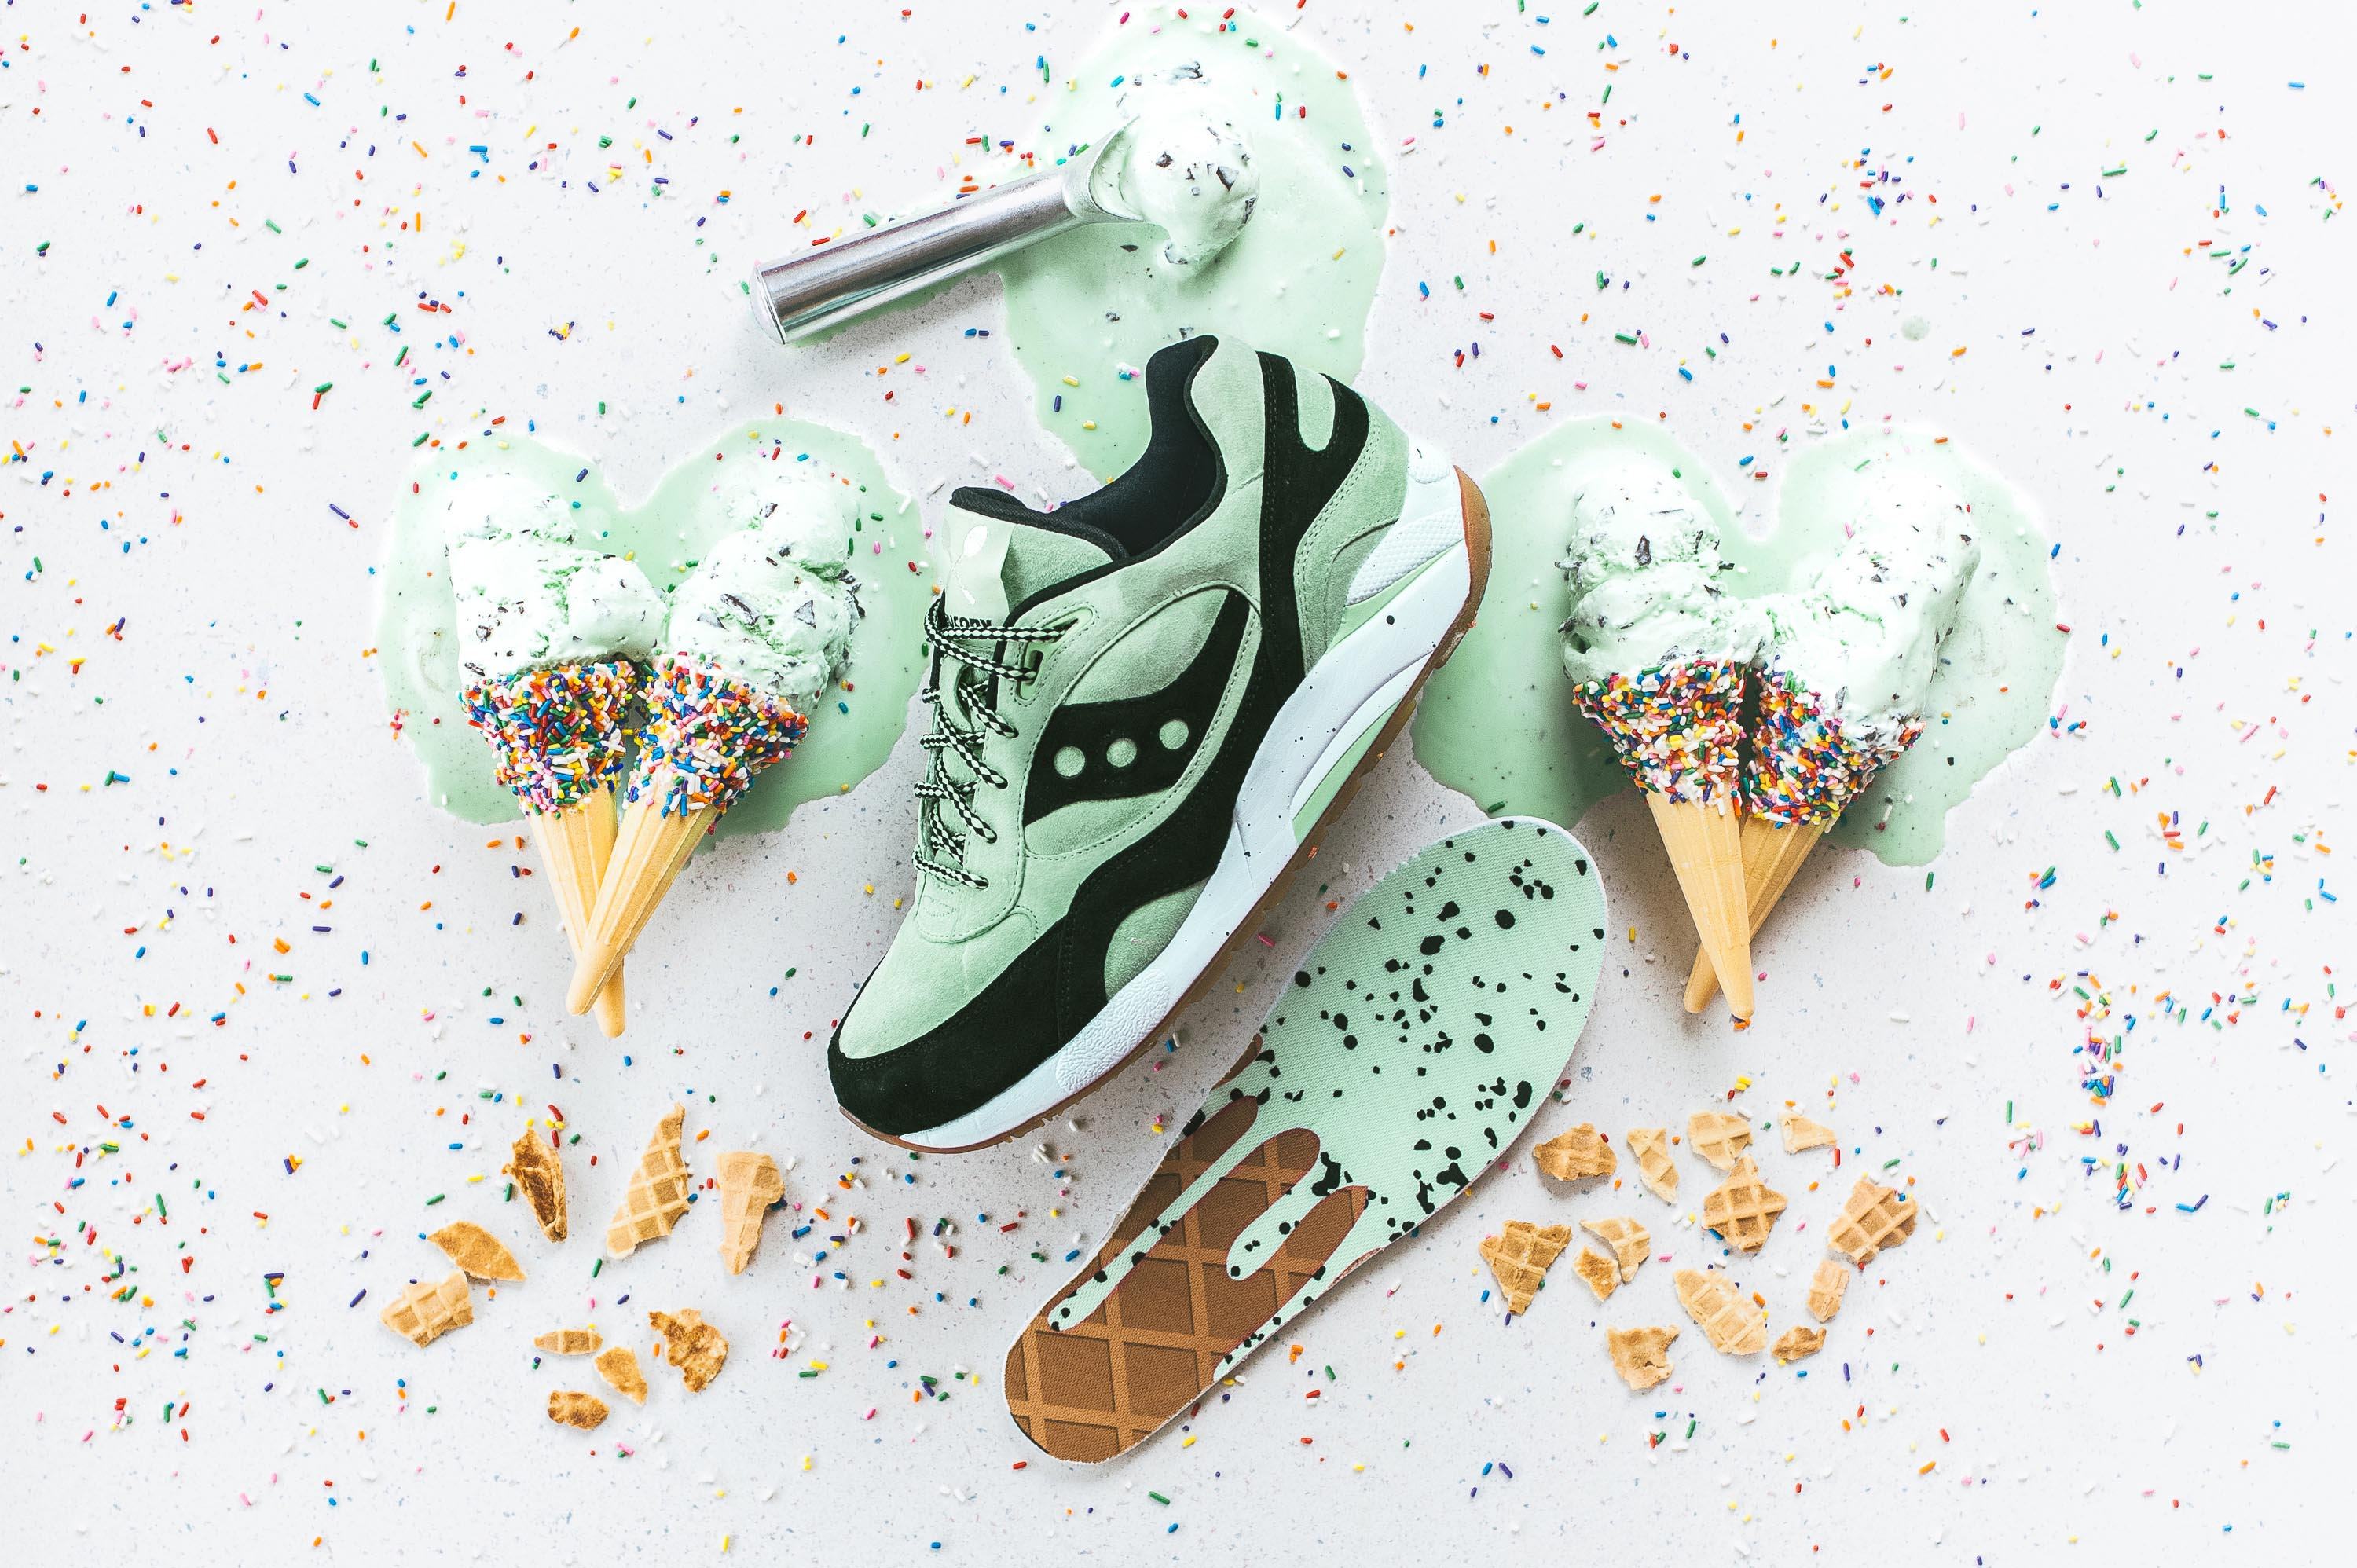 Saucony Originals Scoops Pack Dustin Guidry Photography 11